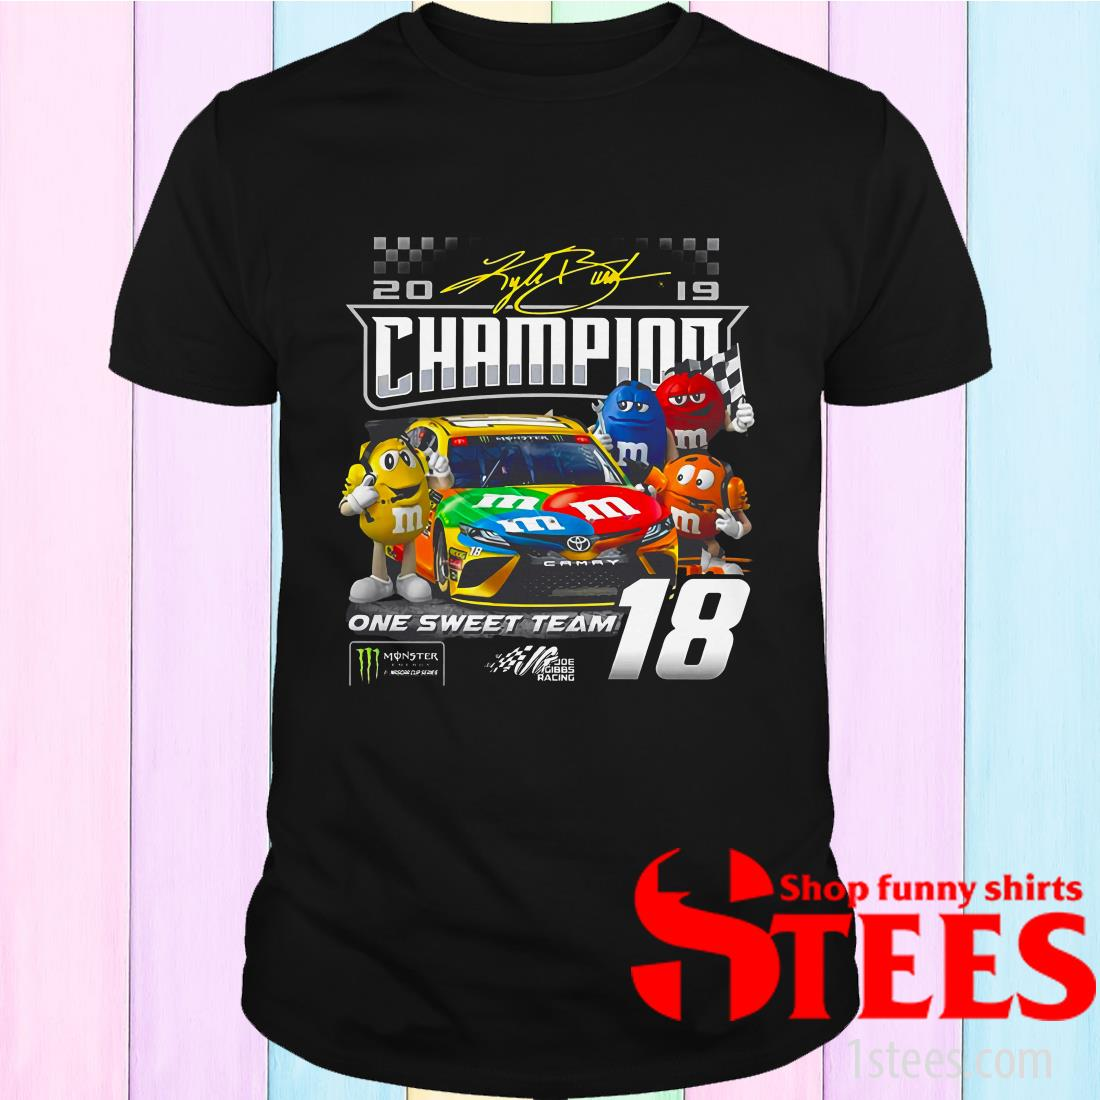 M&M 2019 Kyle Busch Champion One Sweet Team 18 Shirt